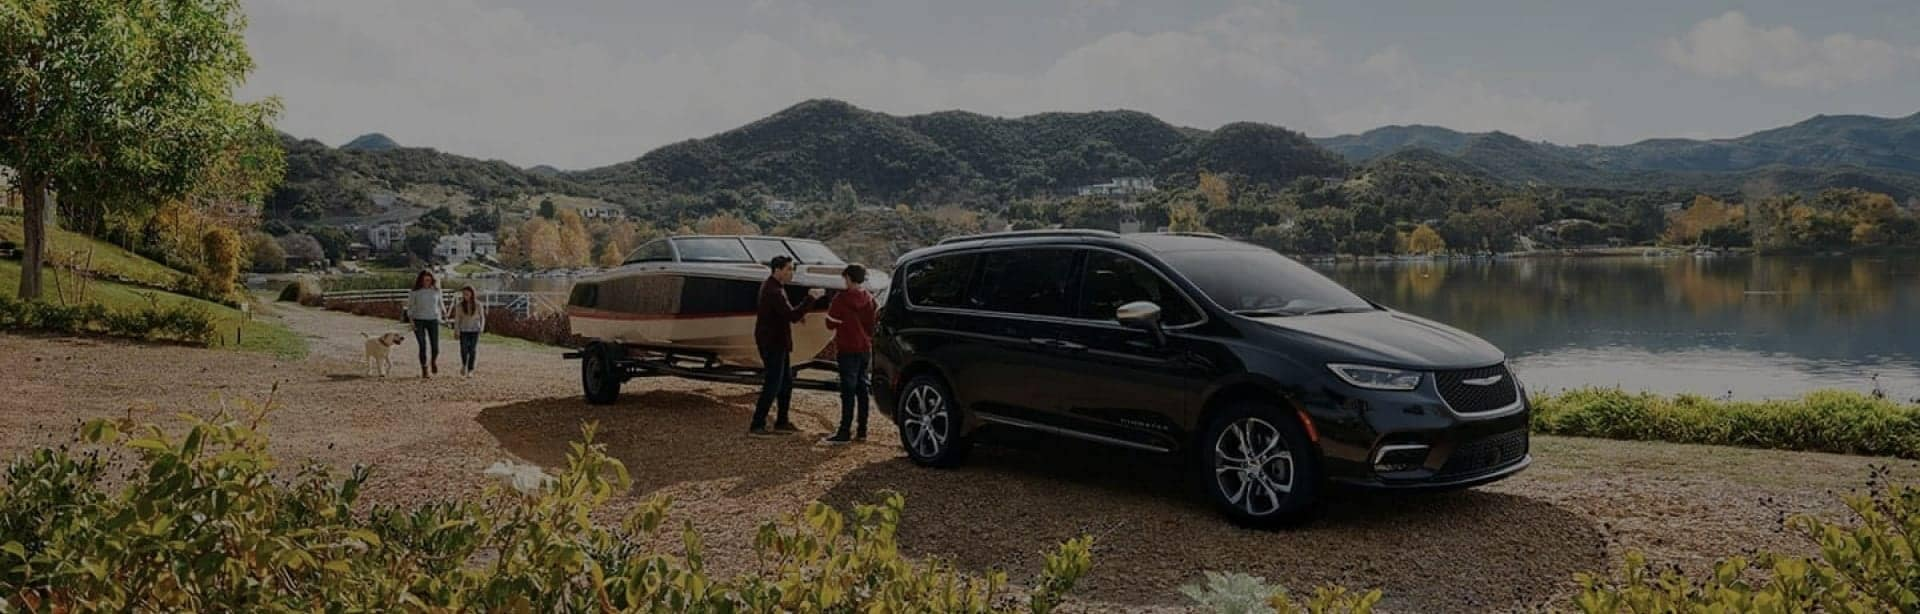 Chrysler vehicle towing a boat